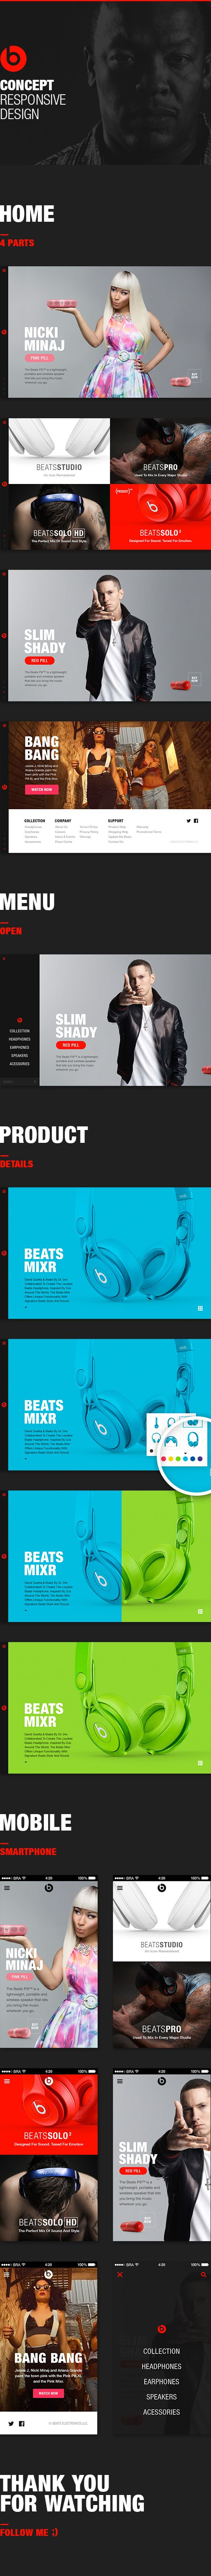 Beats by Dre - Responsive Design Concept on Web Design Served